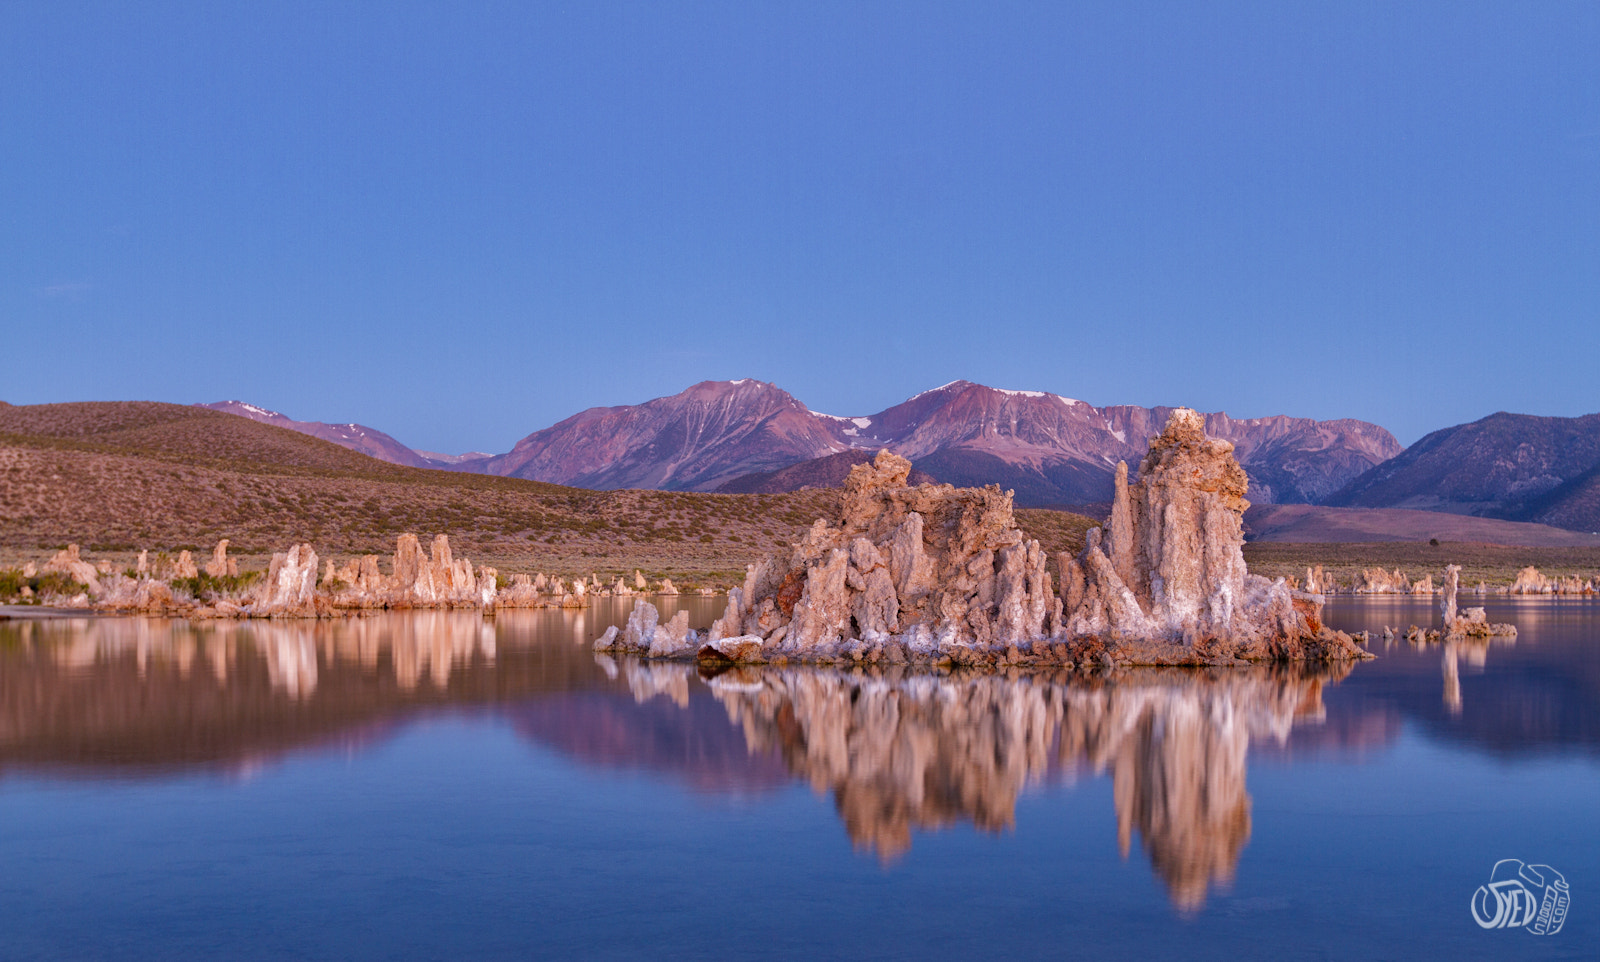 Photograph The Great Tufa's by Syed Abbas on 500px